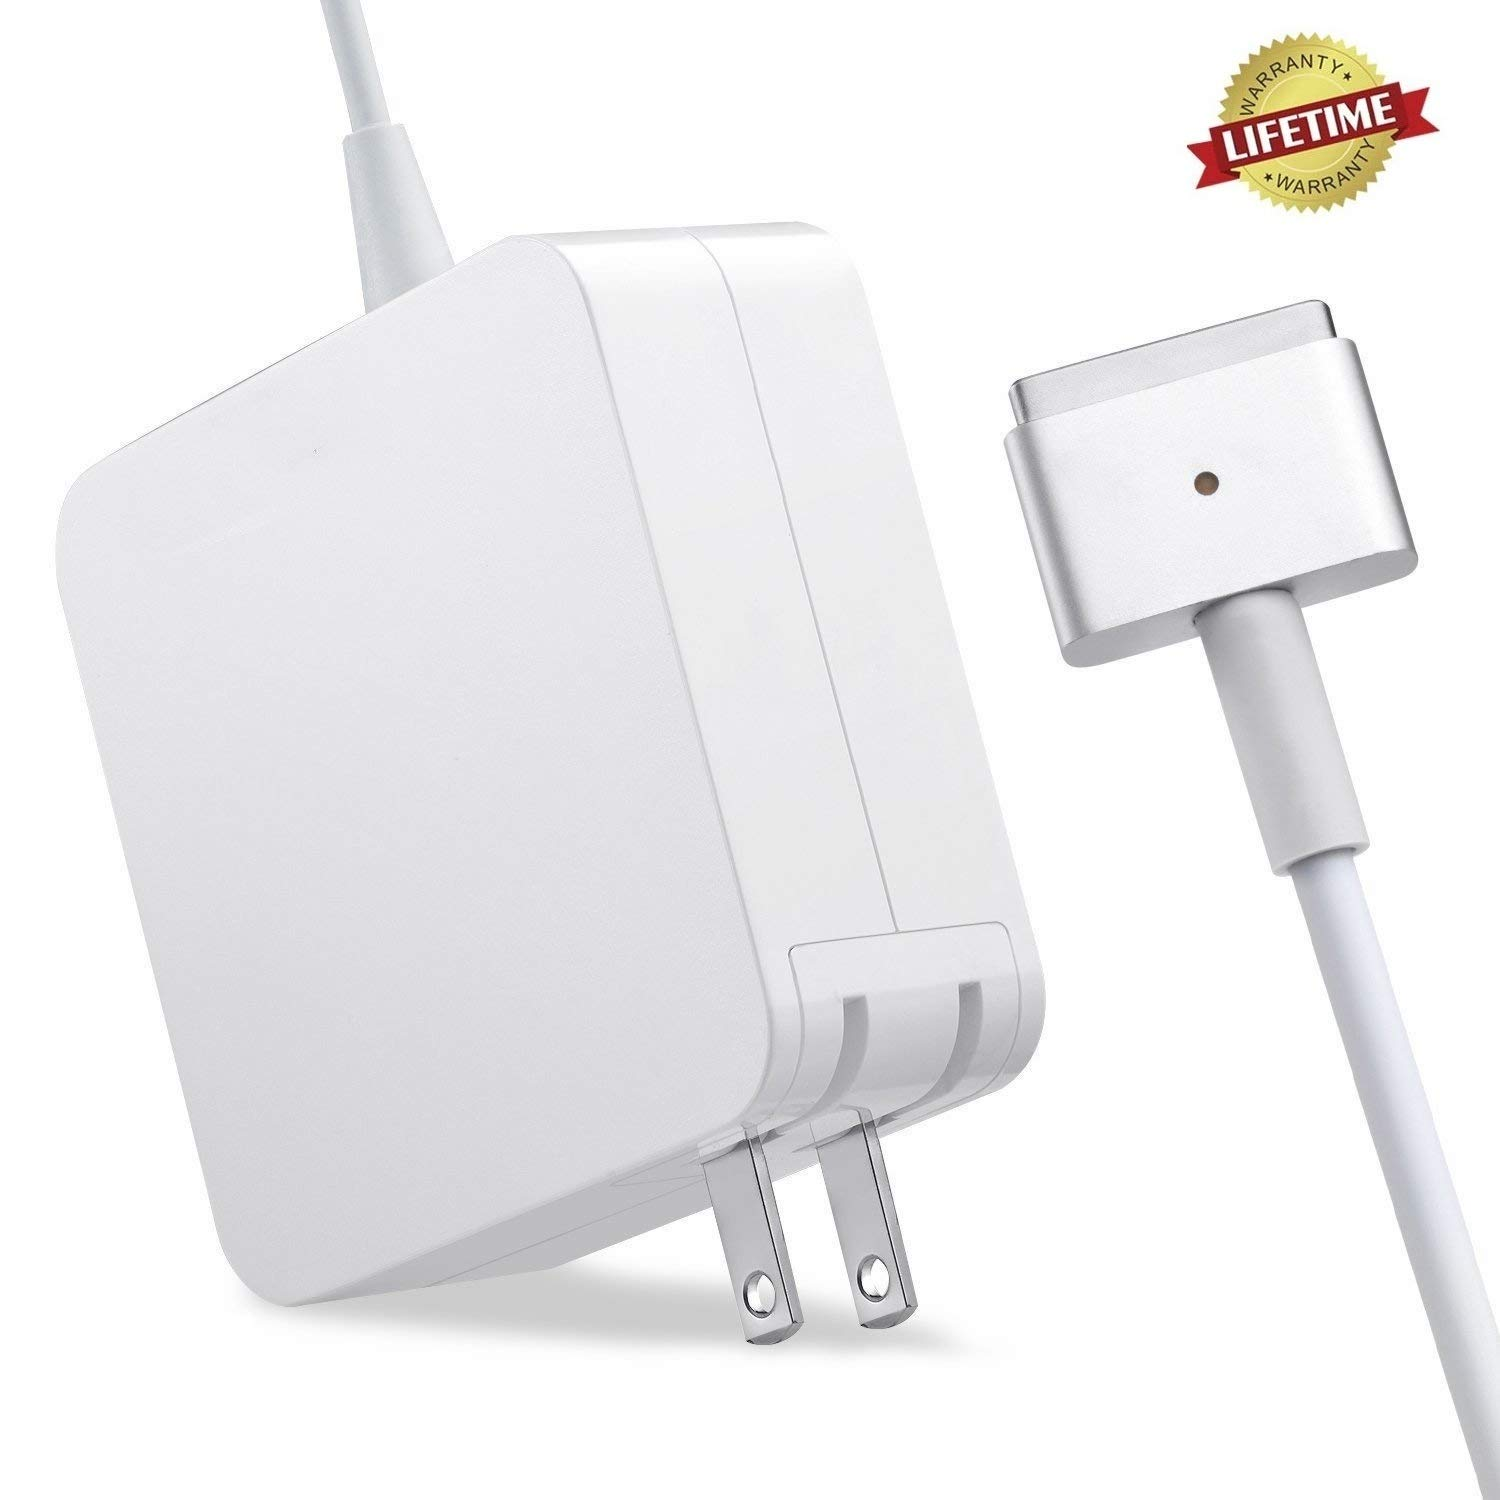 Mac Book Air Charger,Replacement 45W Magsafe 2 Power Adapter T-Tip Charger for Mac Book Air 11 inch and 13 inch ... (45T)